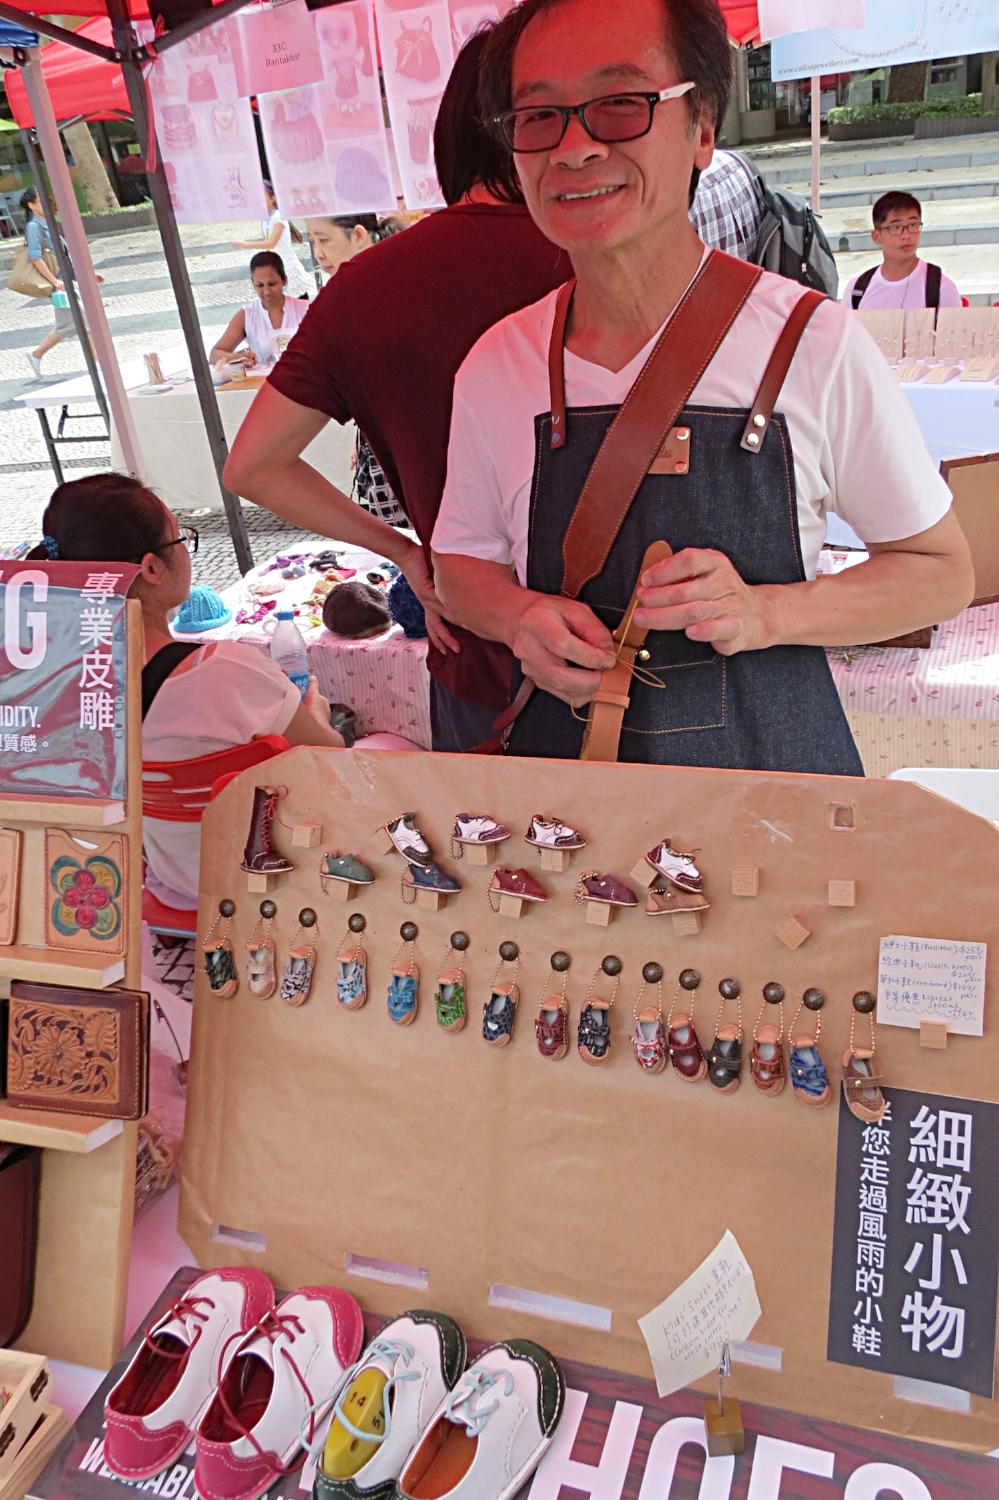 An artisan crafts children's spectator brogues at Handmade Hong Kong Market